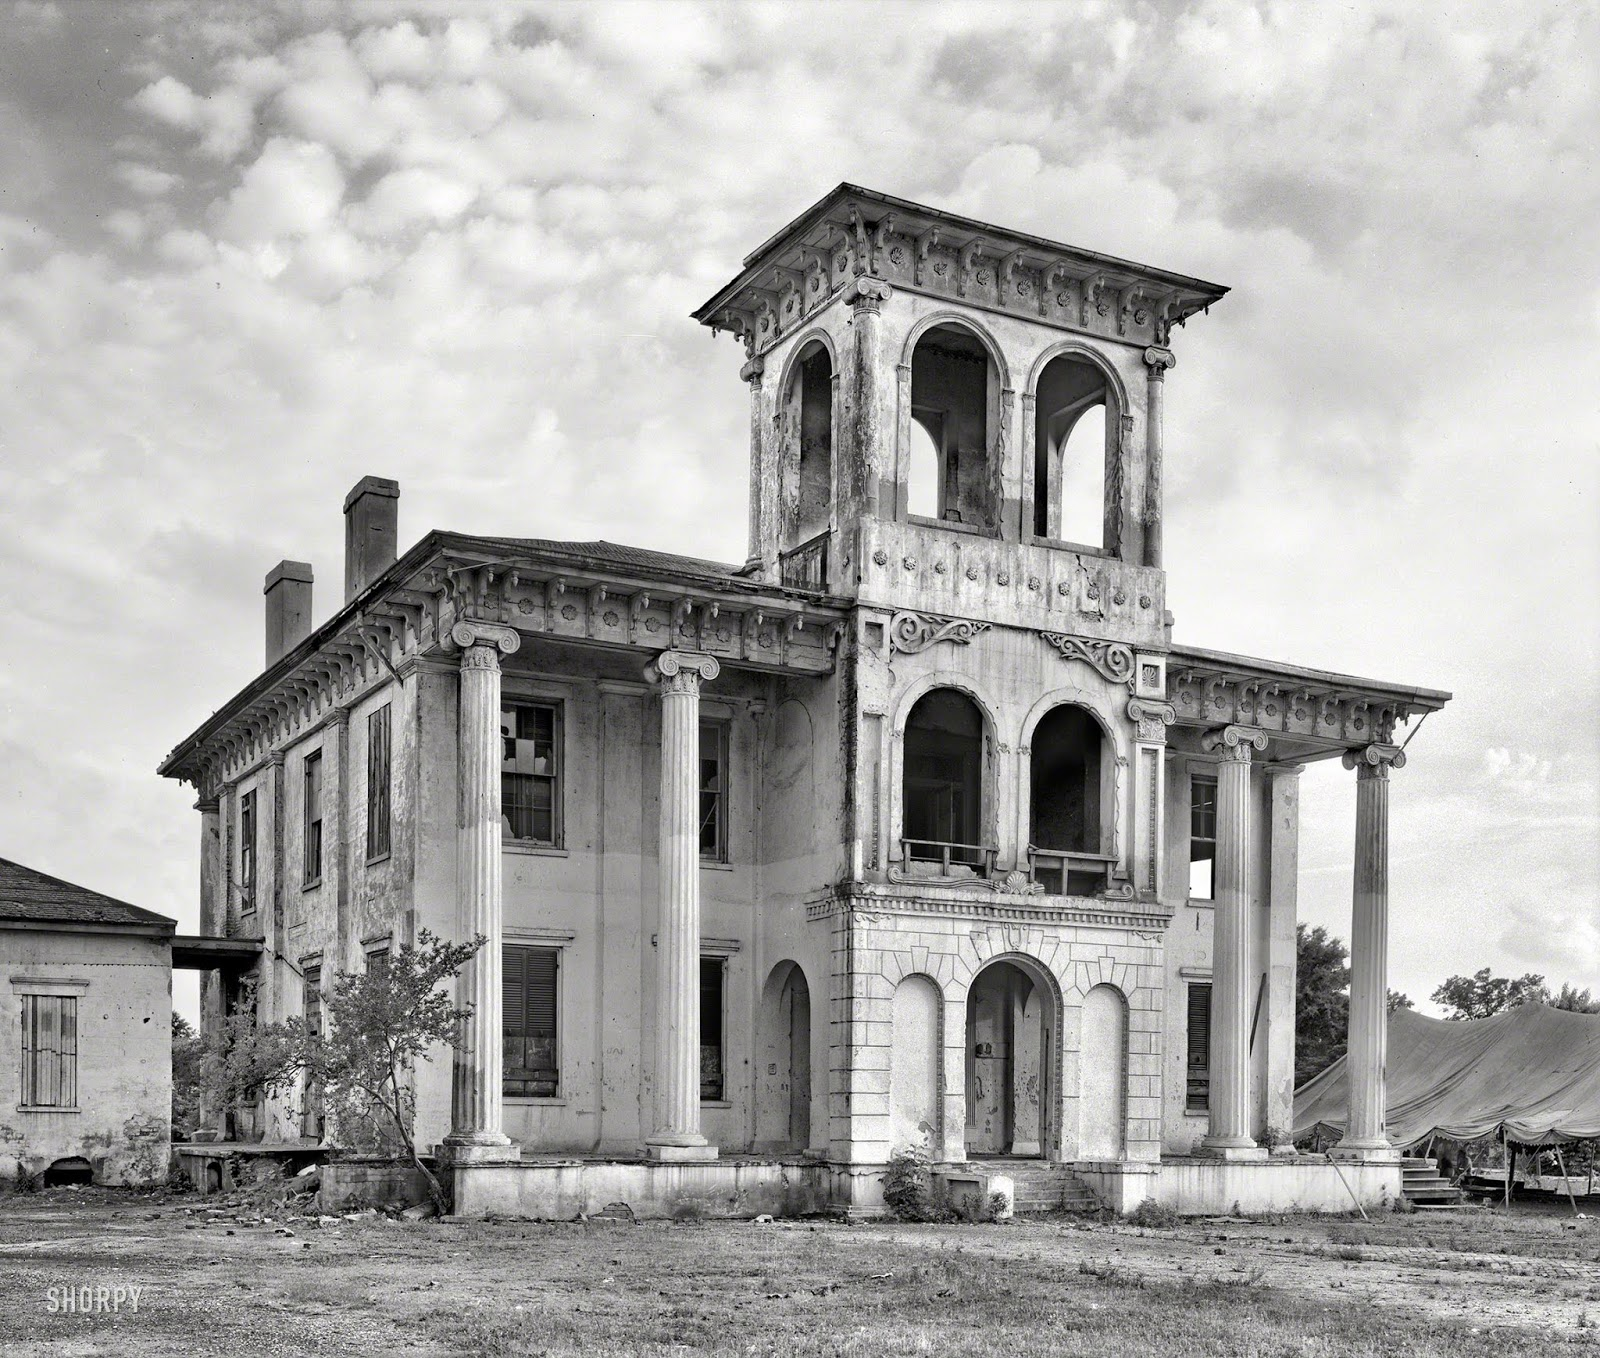 Most Haunted Places In Tuscaloosa Alabama: 10 Haunted Places In Alabama